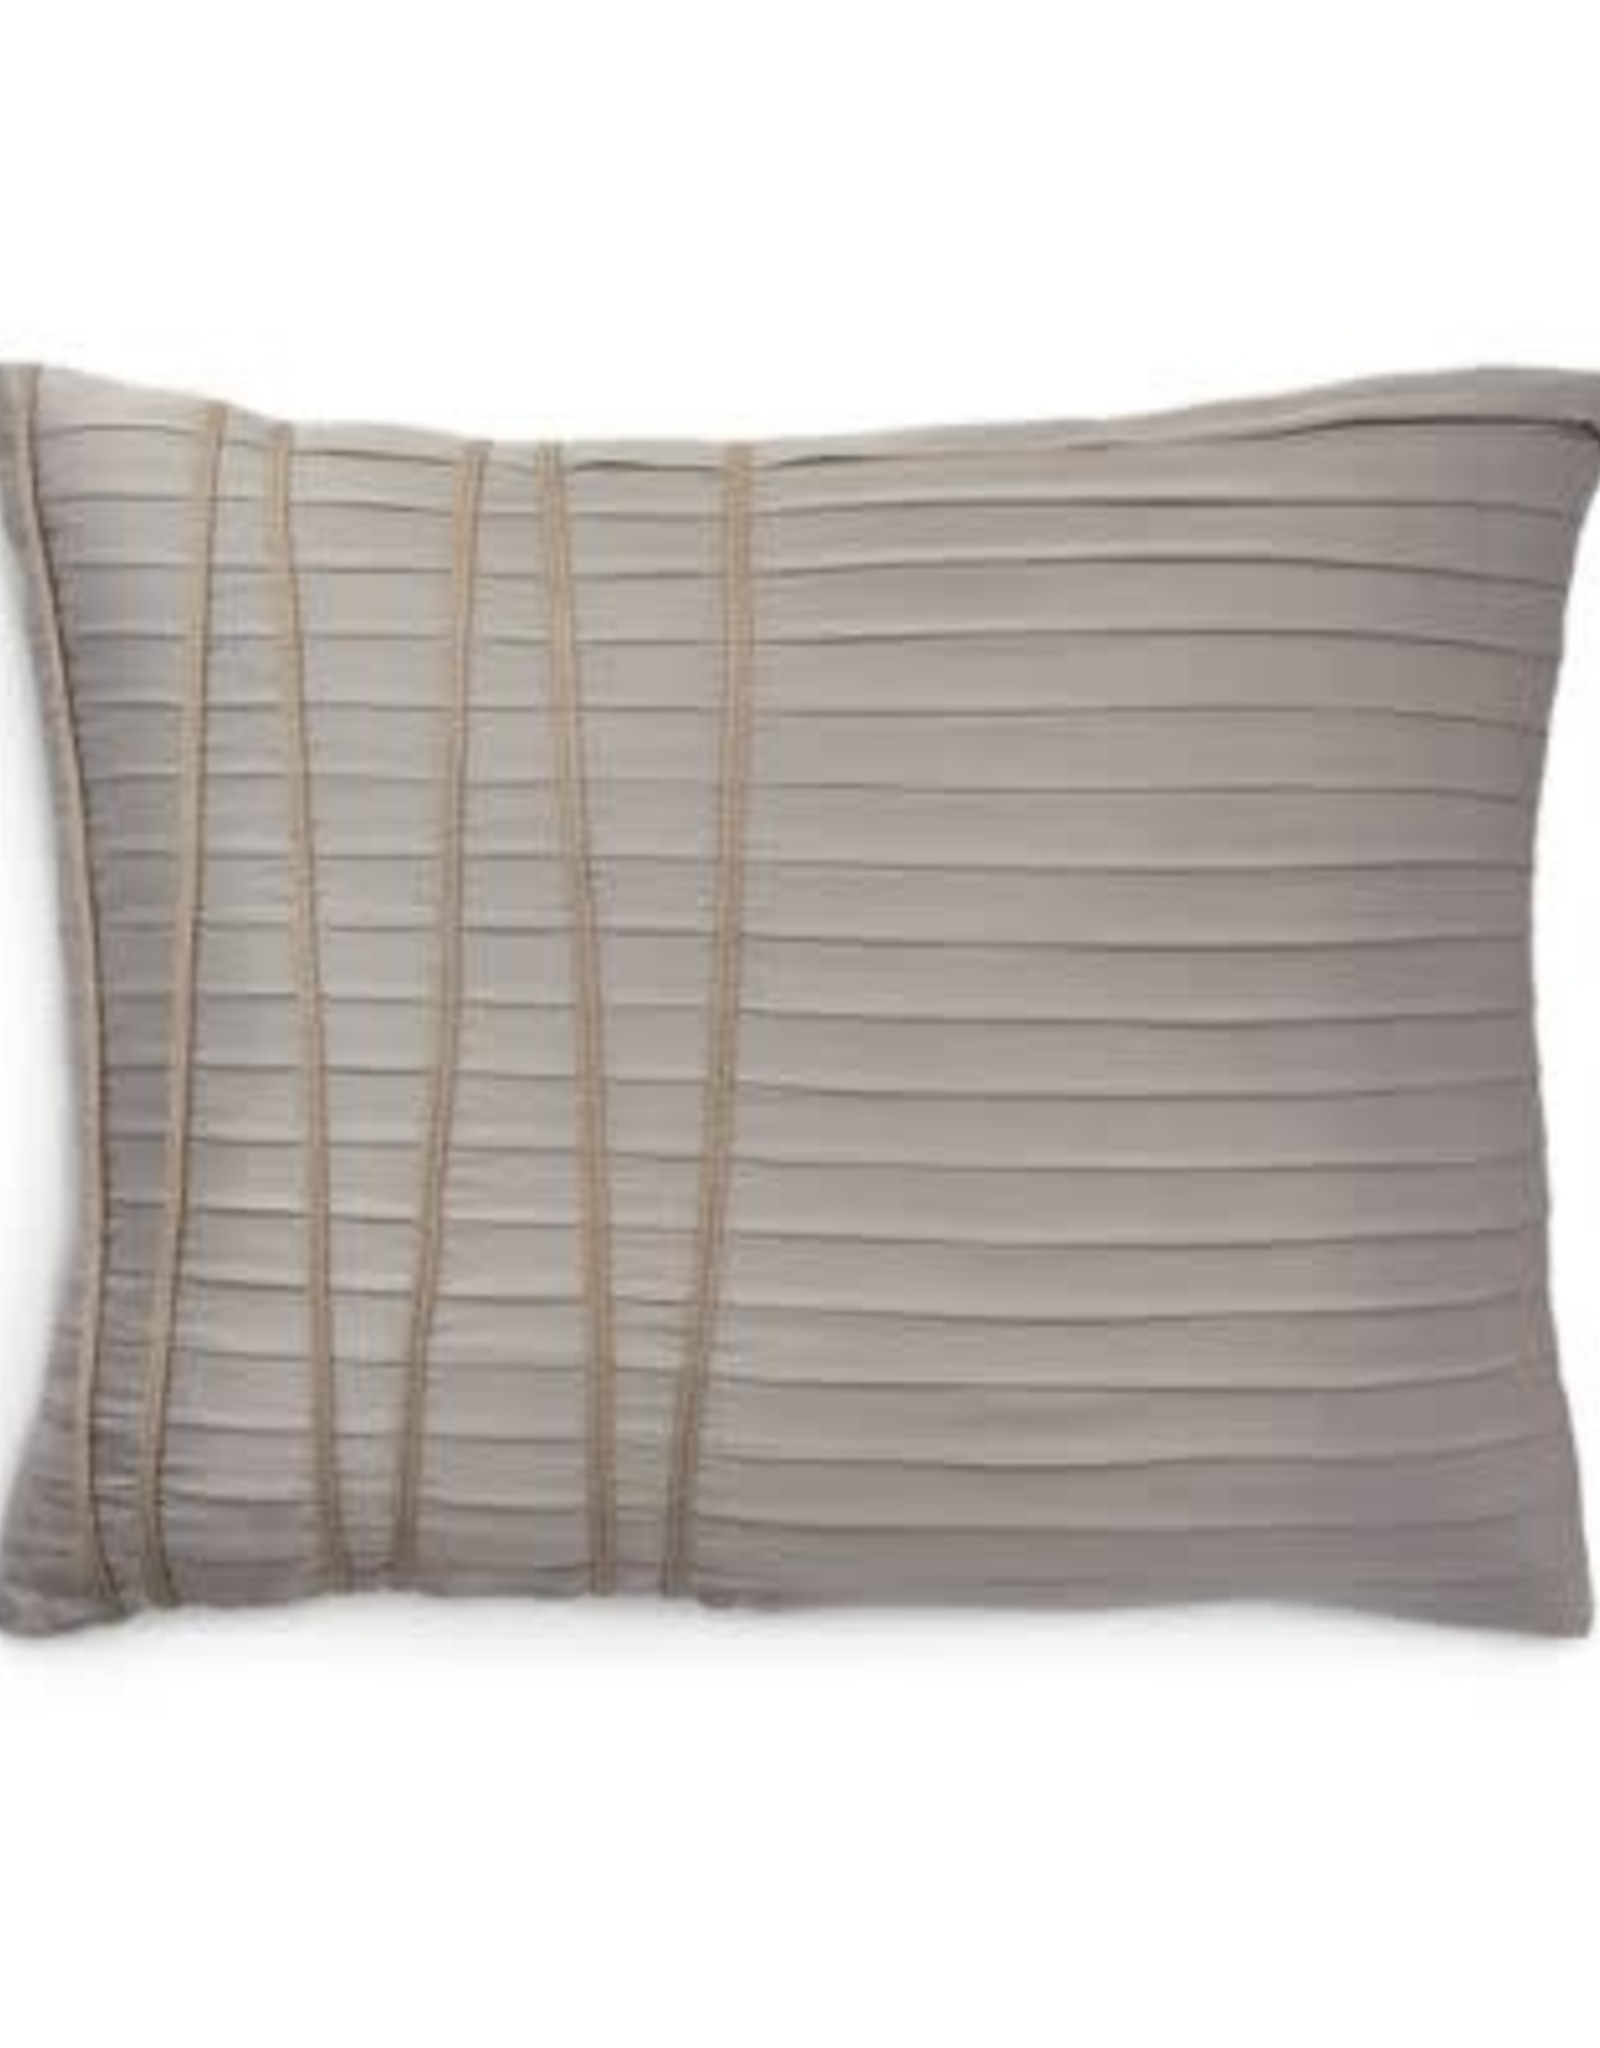 Donna Karan REFLECTION SILVER 16X20 SHAM